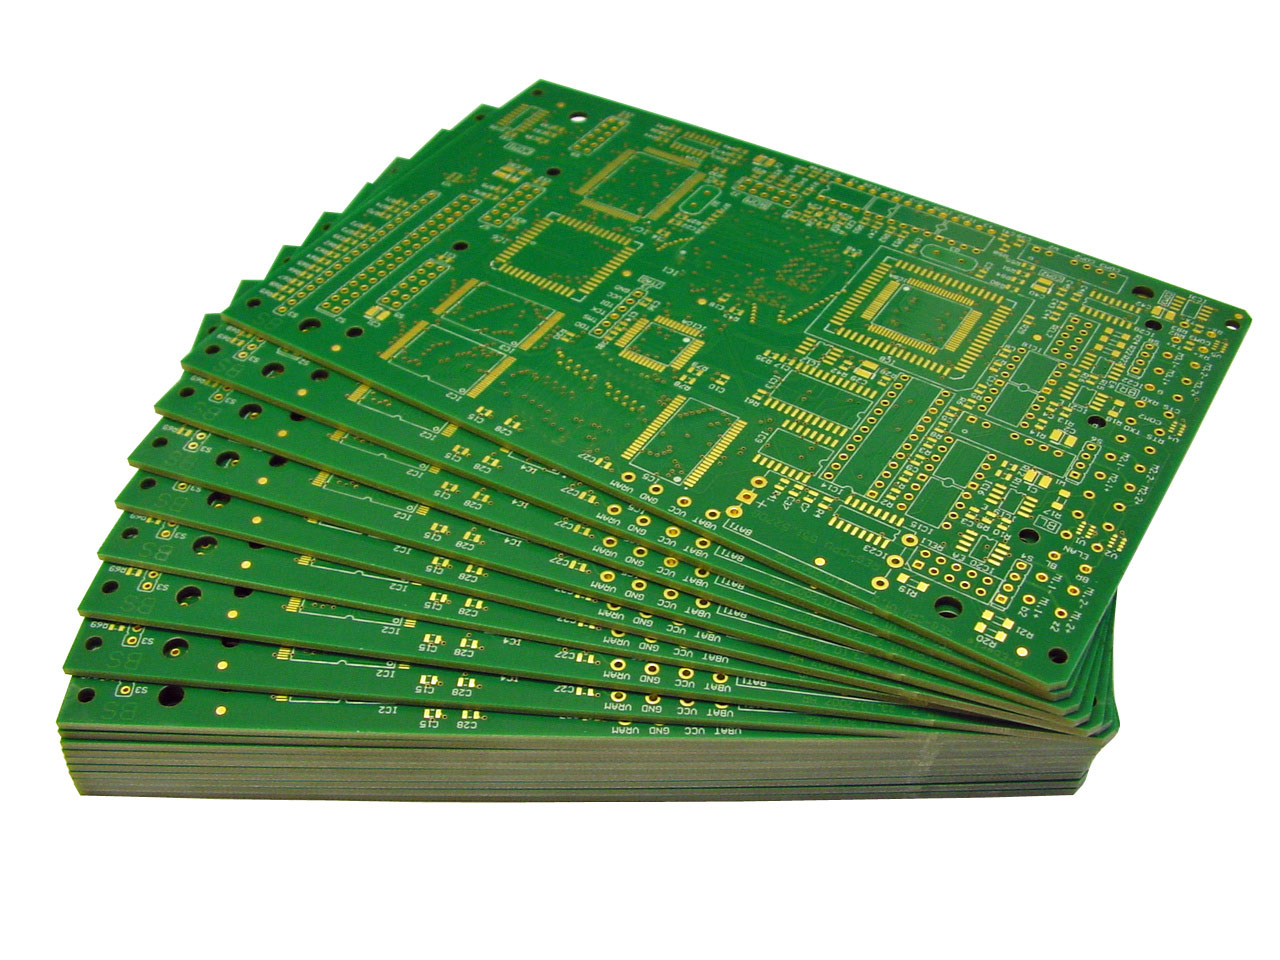 Printed Circuit Board Pricing Multi Boards Design And Method Calculate Online